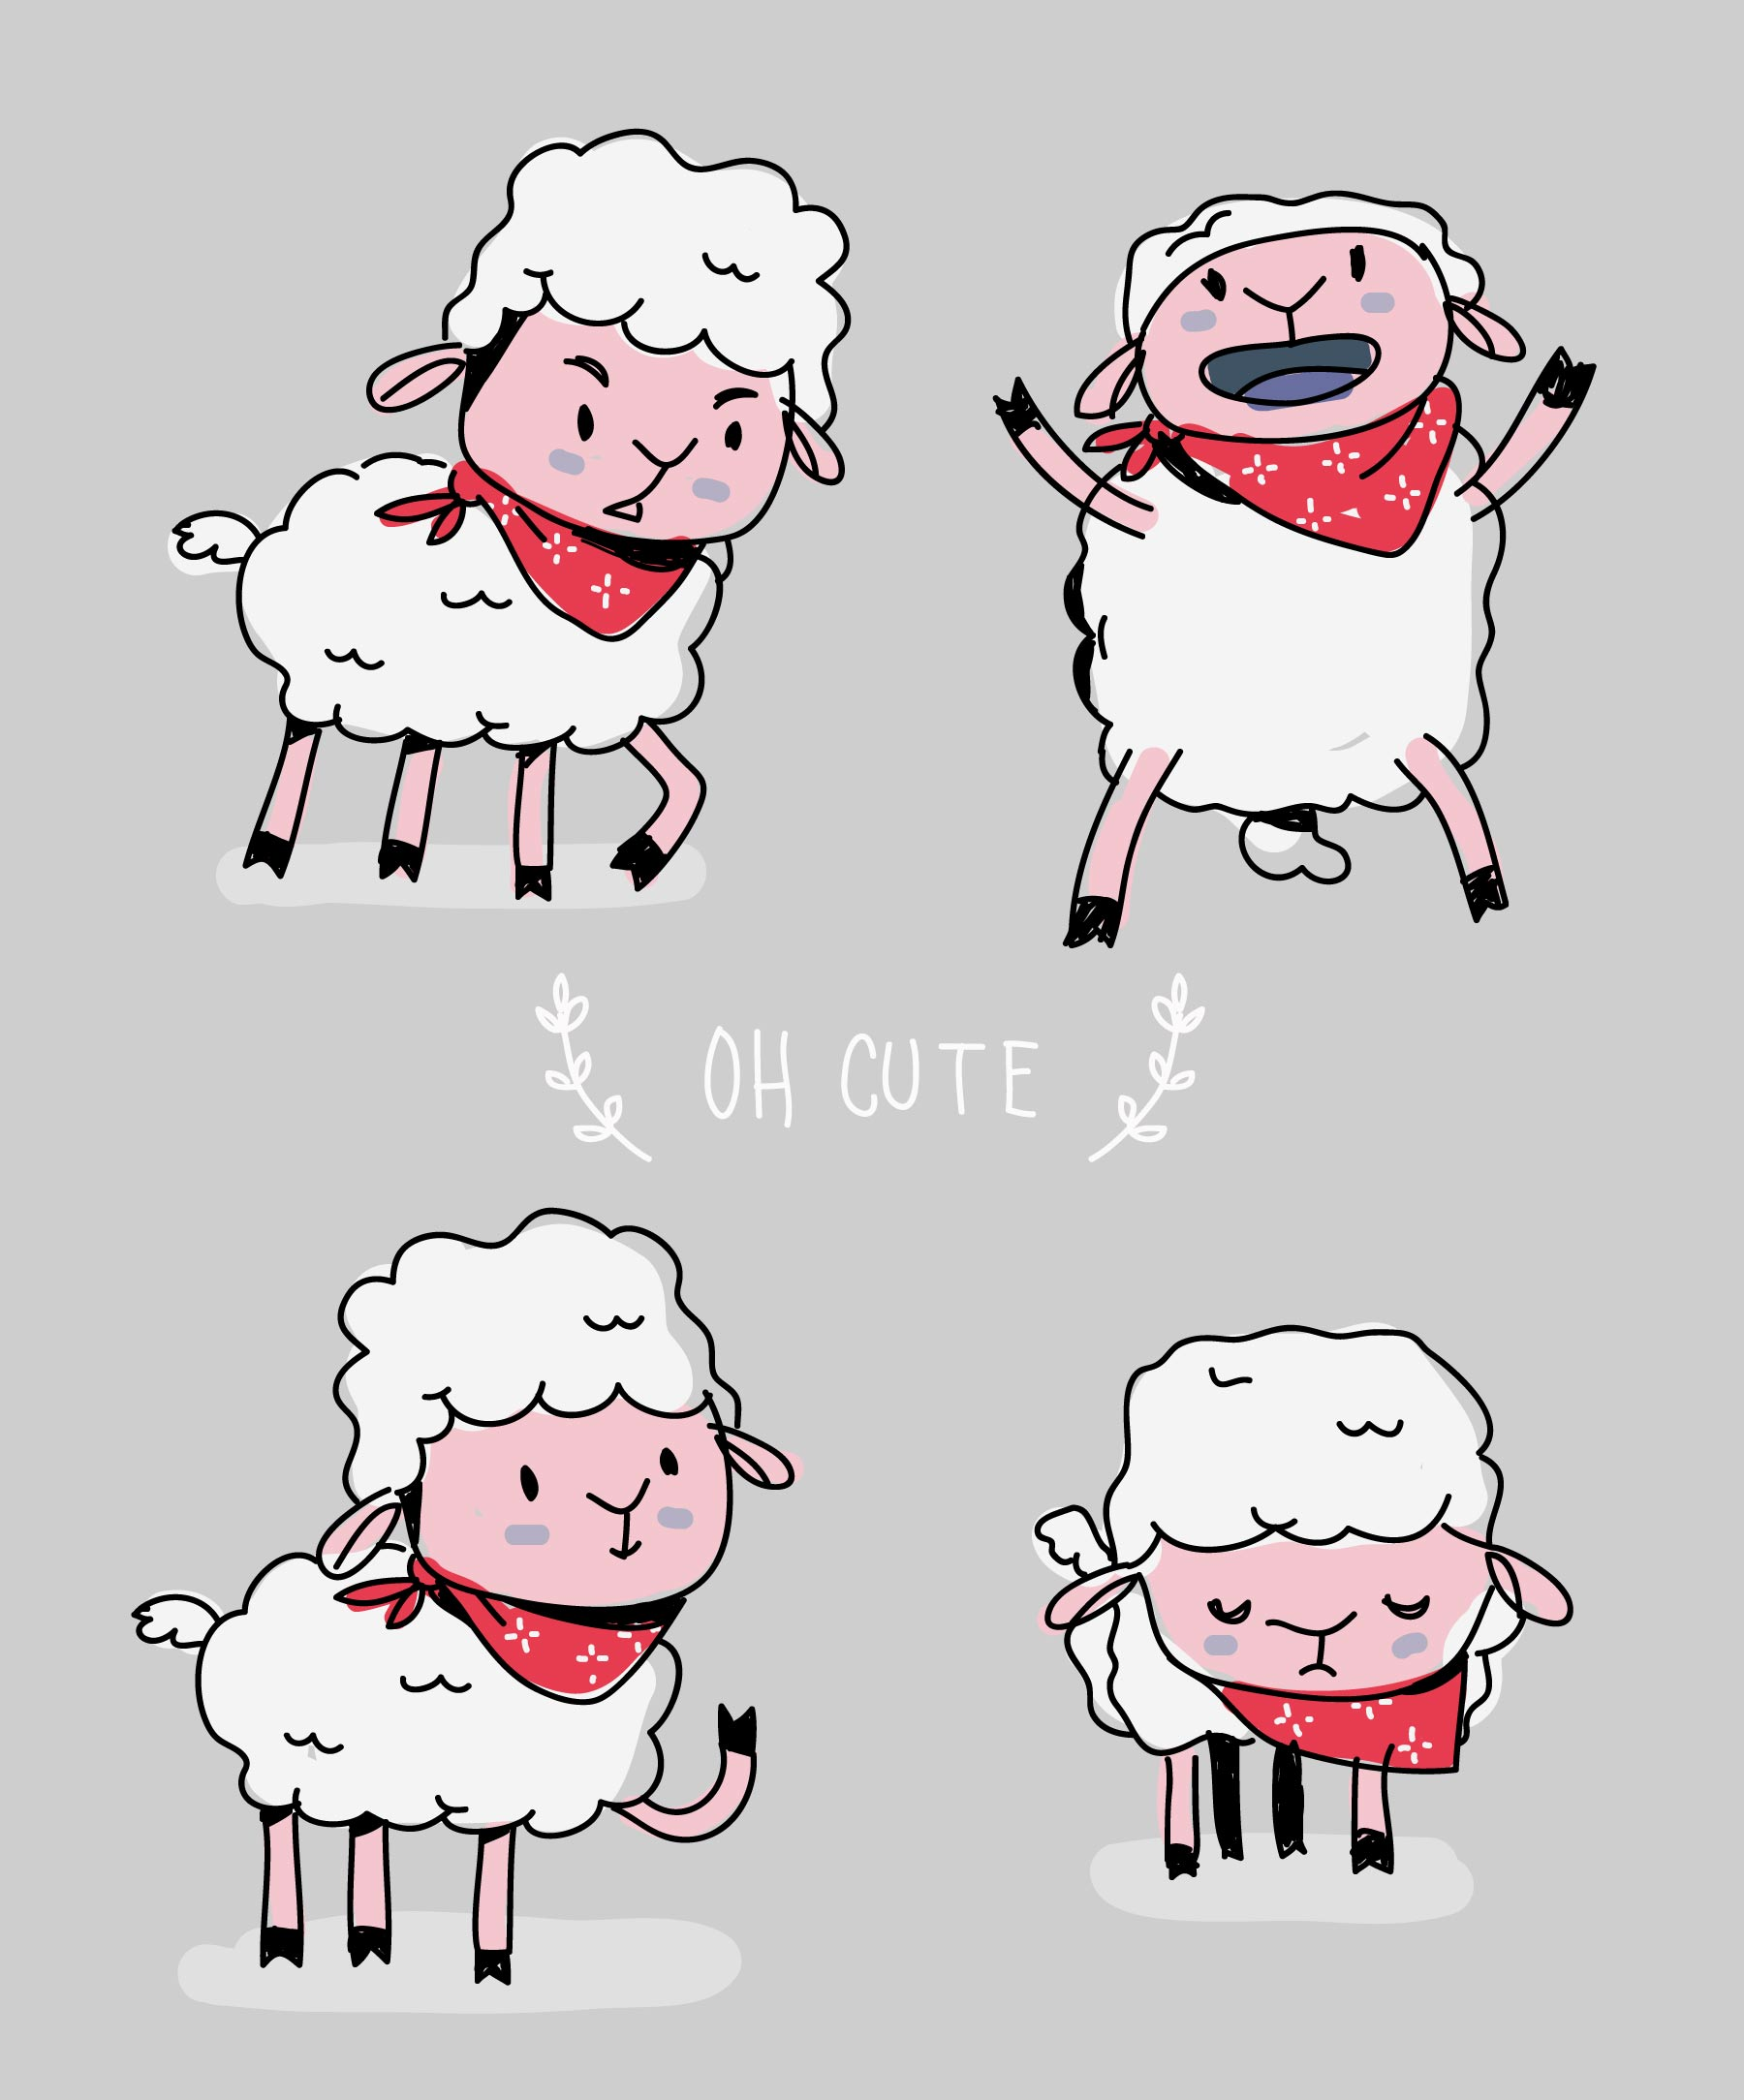 Cute Sheep Drawing Tumblr Cute Sheep Character Doodle Vector Illustration Download